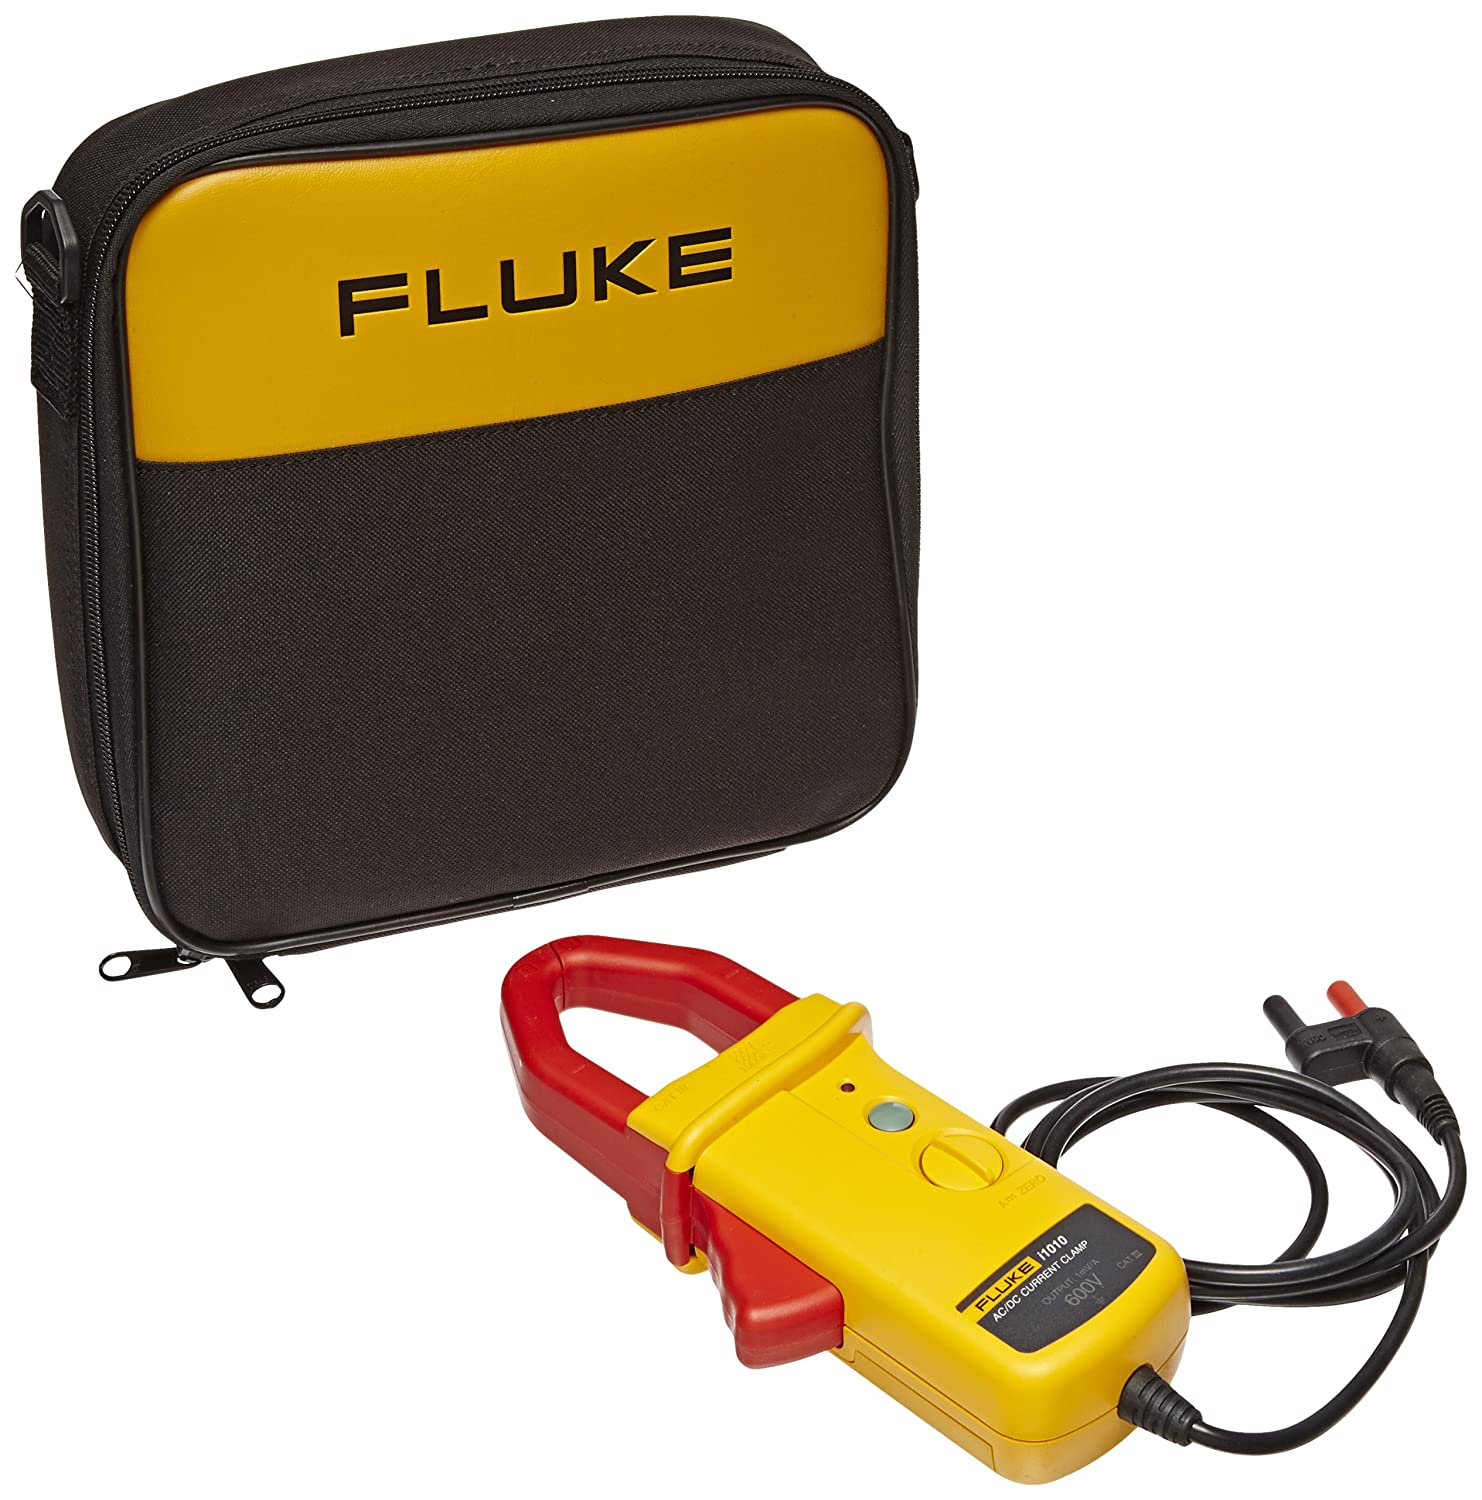 fluke i1010 ac dc current clamp for dmm s 600v voltage 600a ac rh amazon com Fluke Process Calibrator Fluke Process Controller